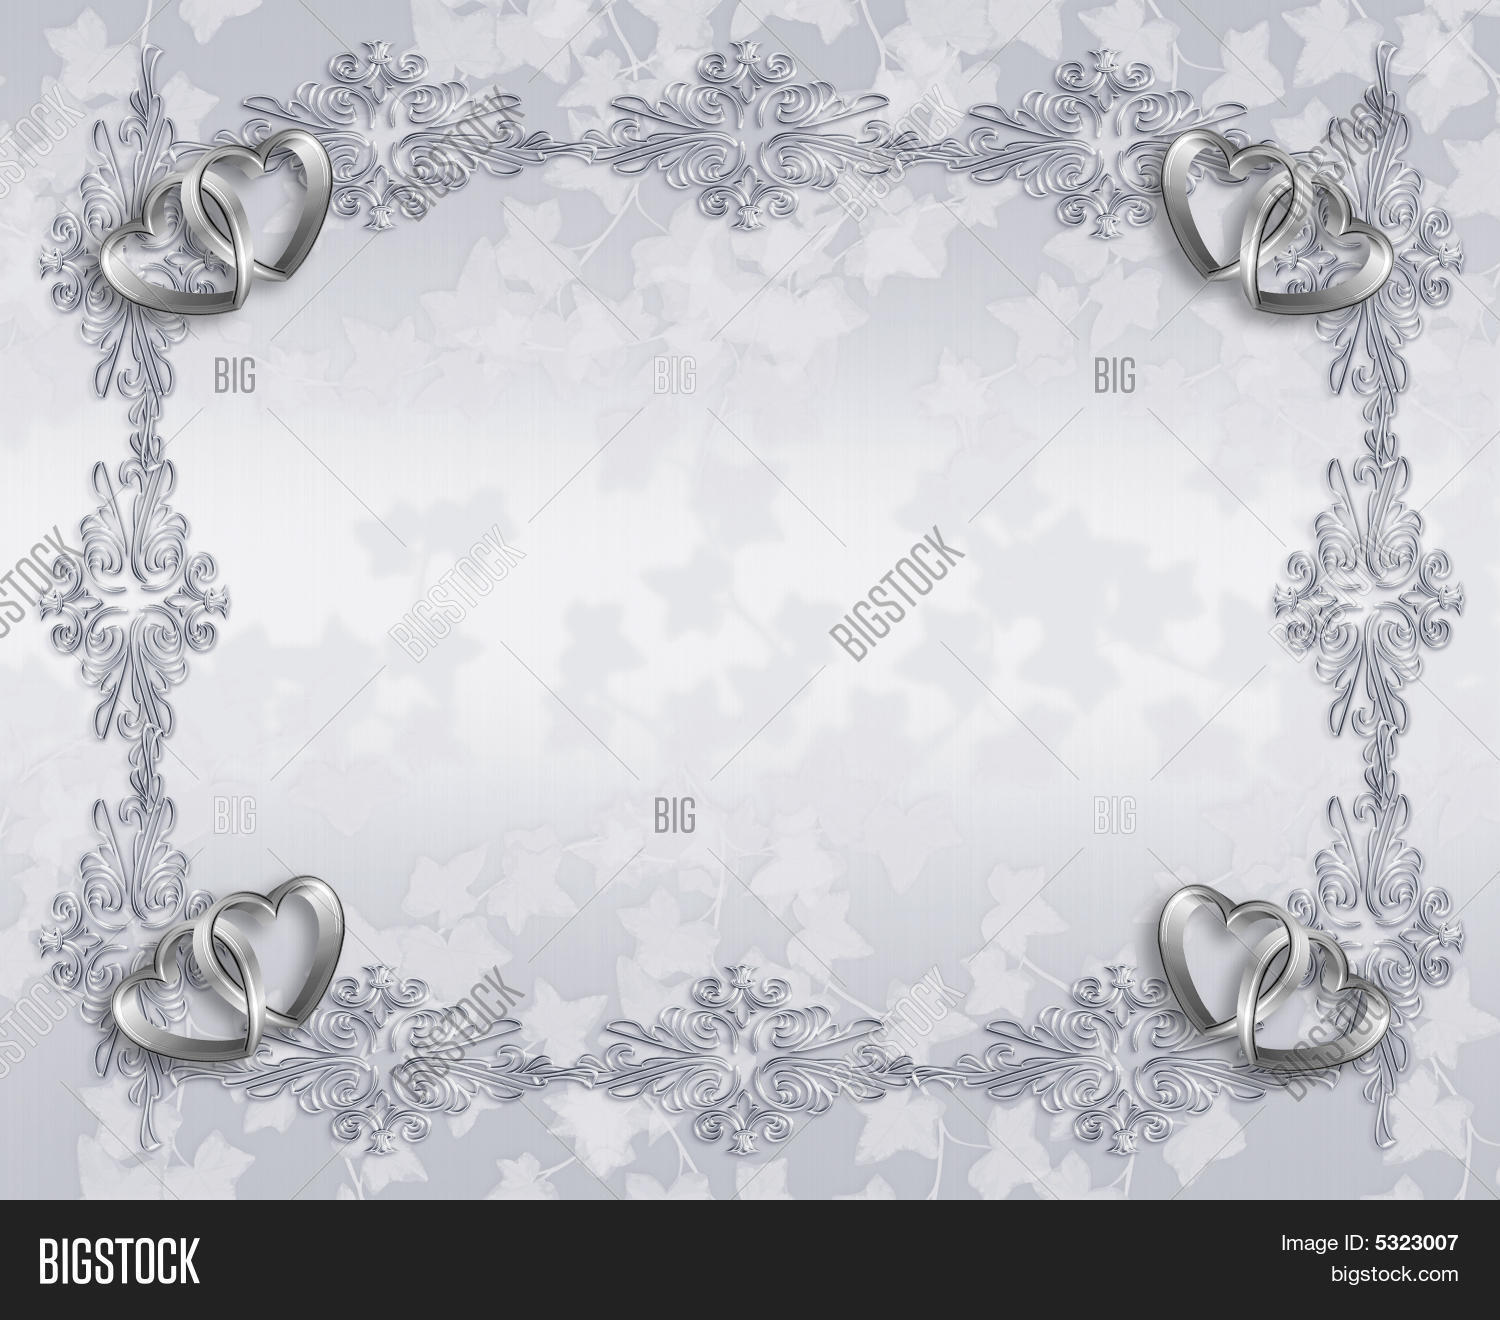 25th Wedding Anniversary Background Images